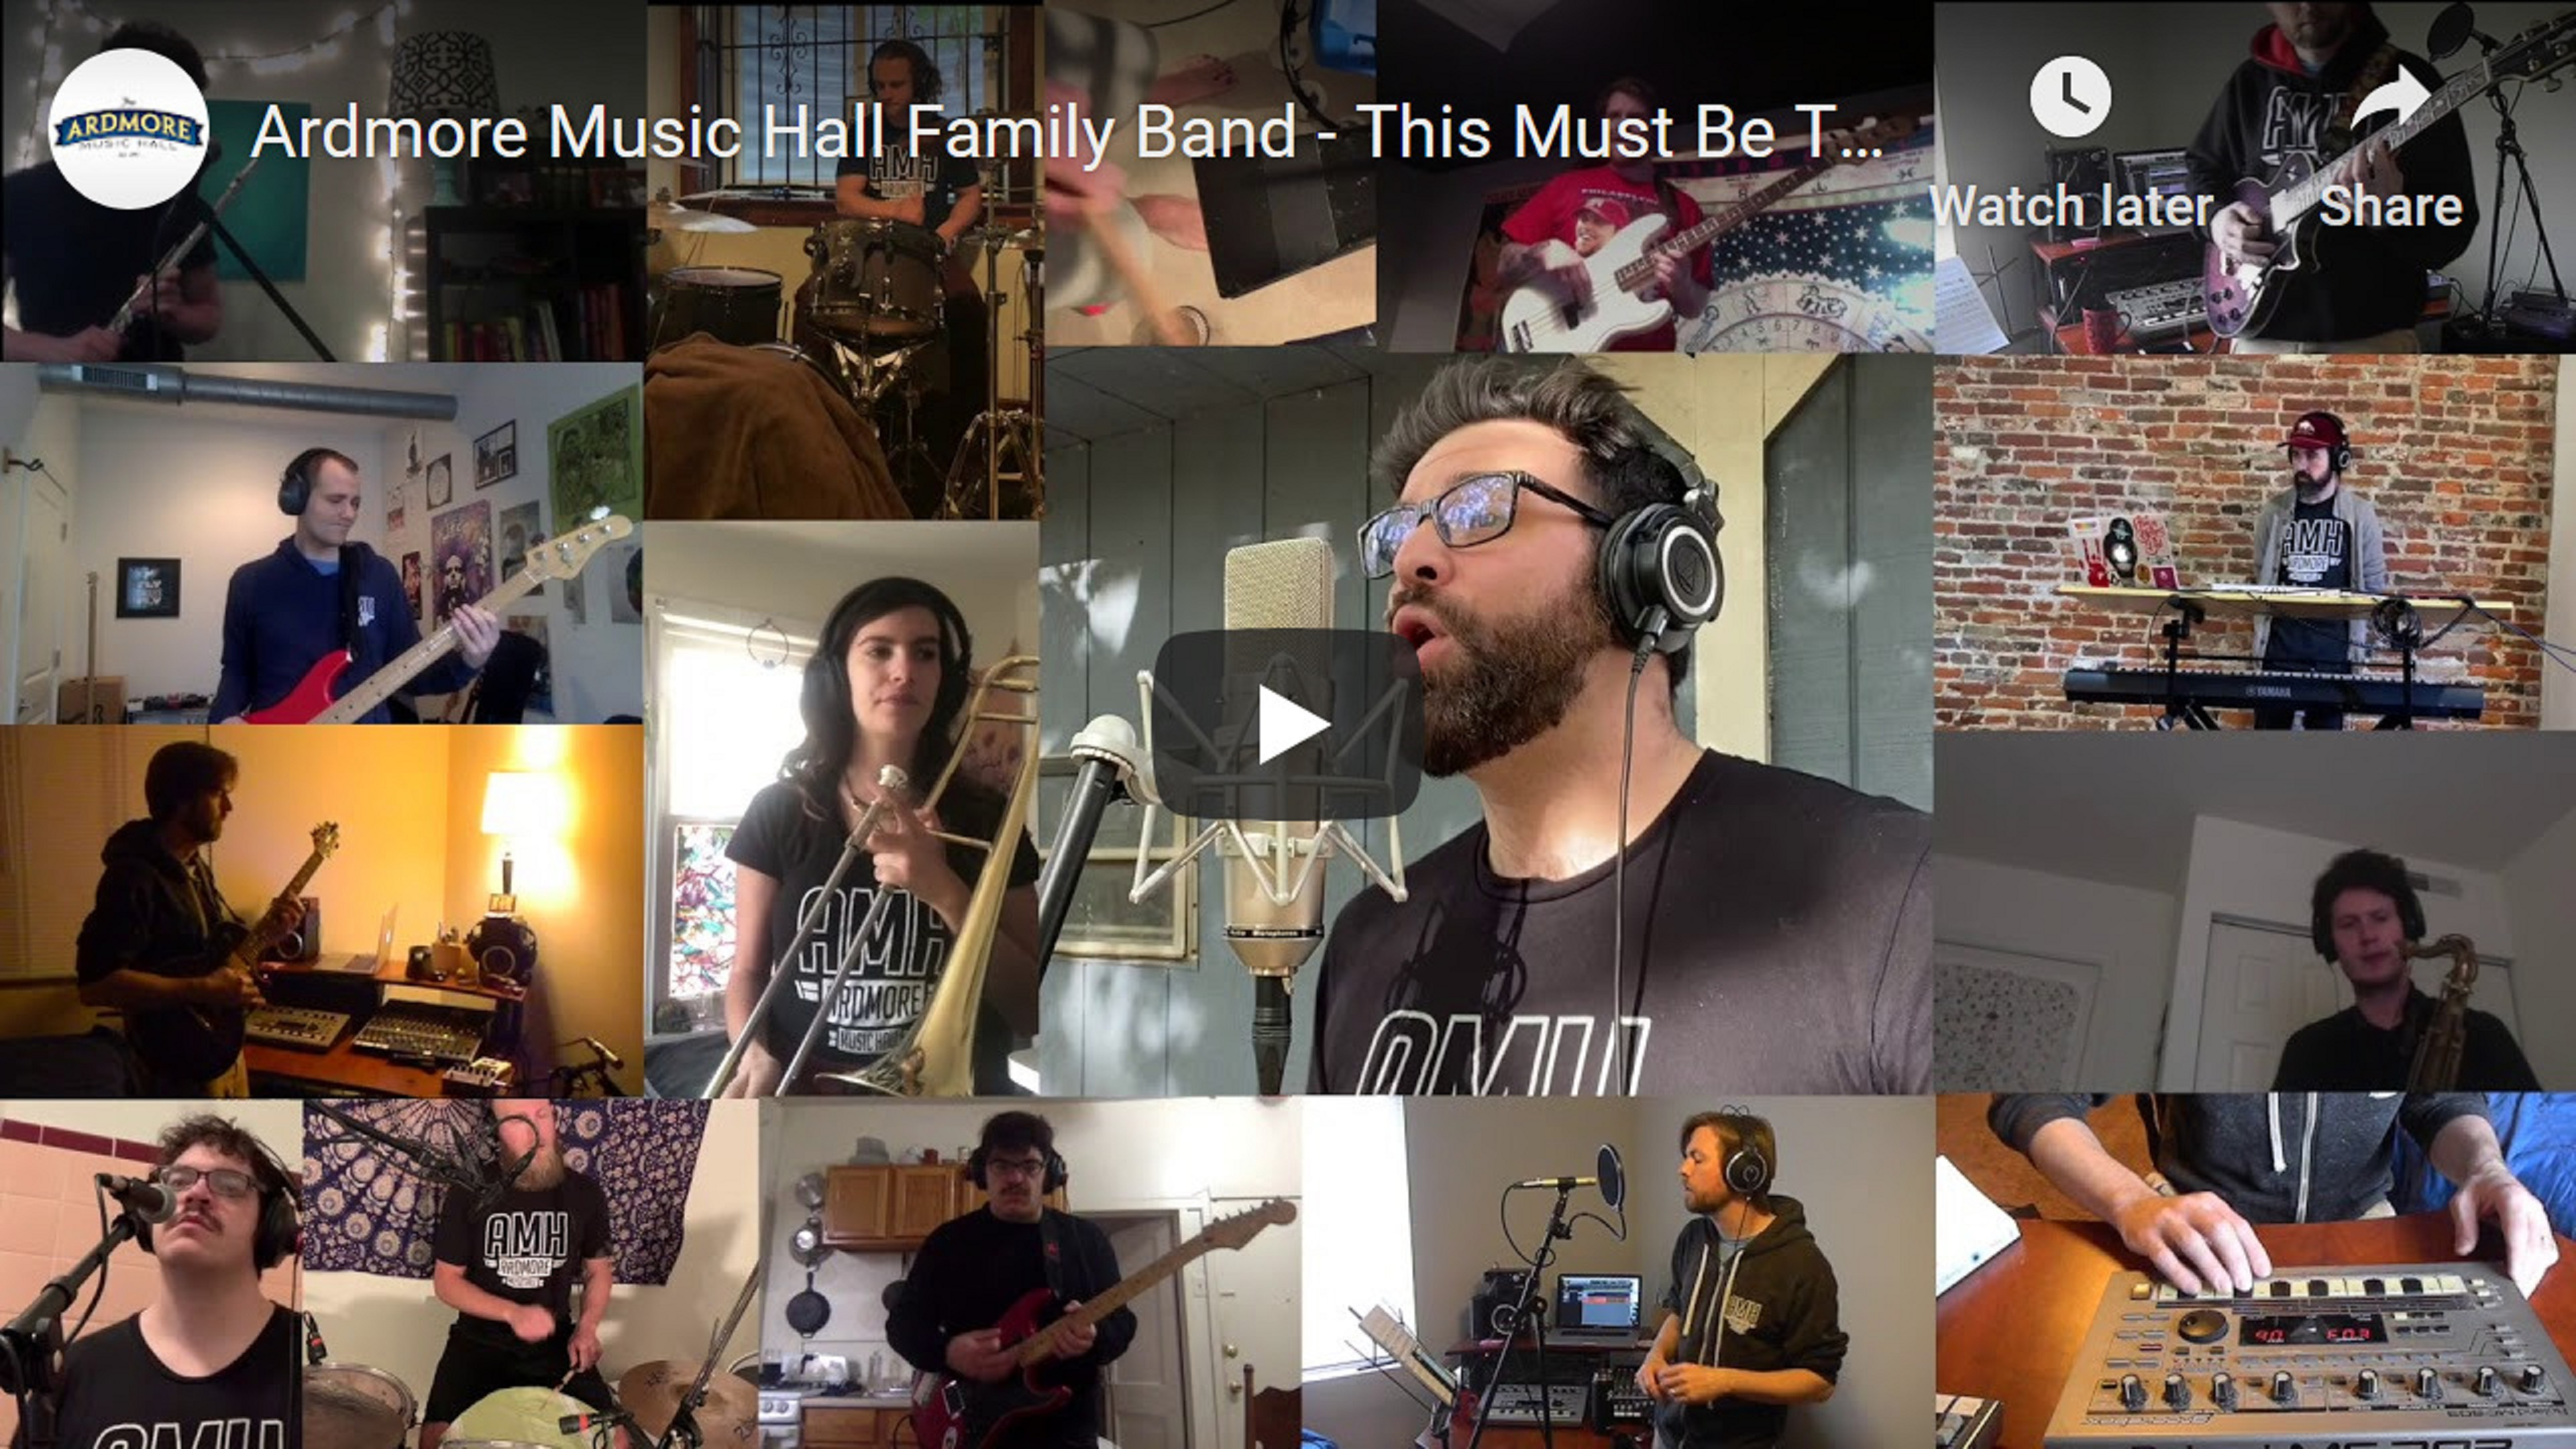 Ardmore Music Hall Announces Staff Family Band, Audio and Video Releases, and Support for Independent Venues